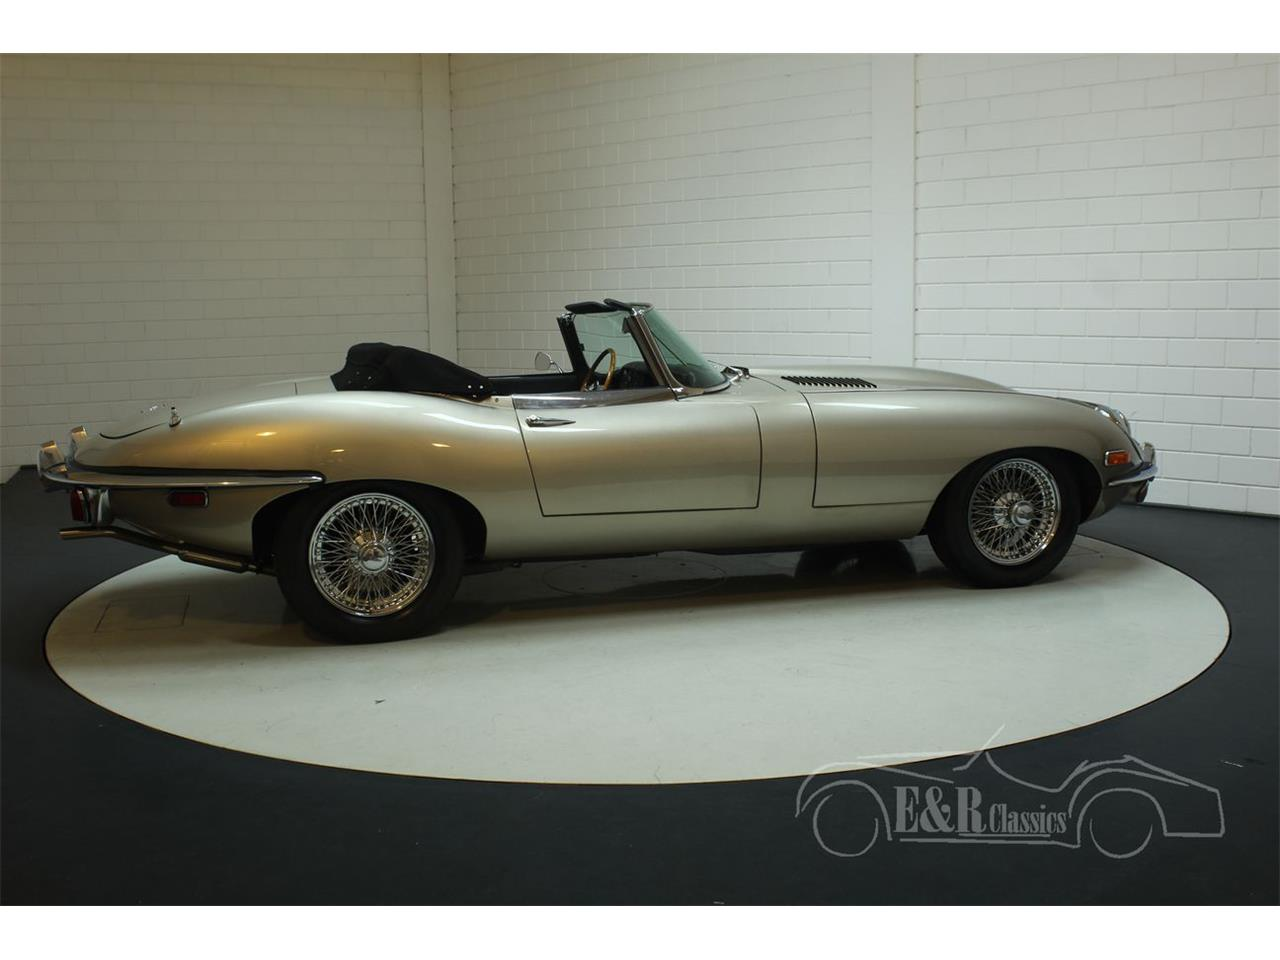 Large Picture of 1970 E-Type located in Waalwijk - Keine Angabe - Offered by E & R Classics - PH40